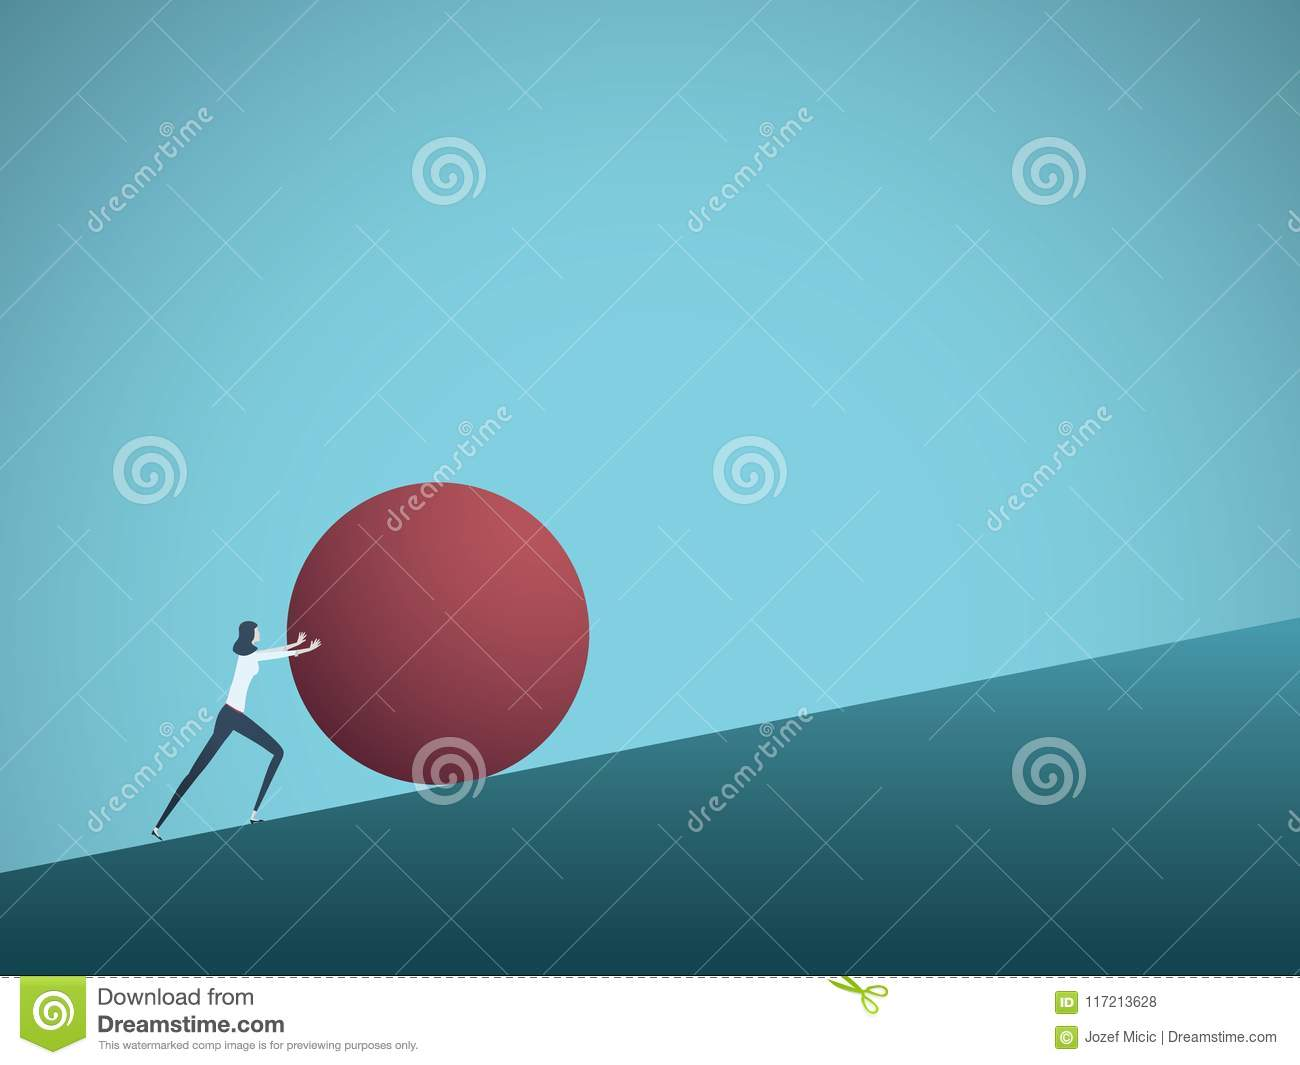 Business challenge vector concept with businesswoman as sisyphus pushing rock uphill. Symbol of difficulty, ambition